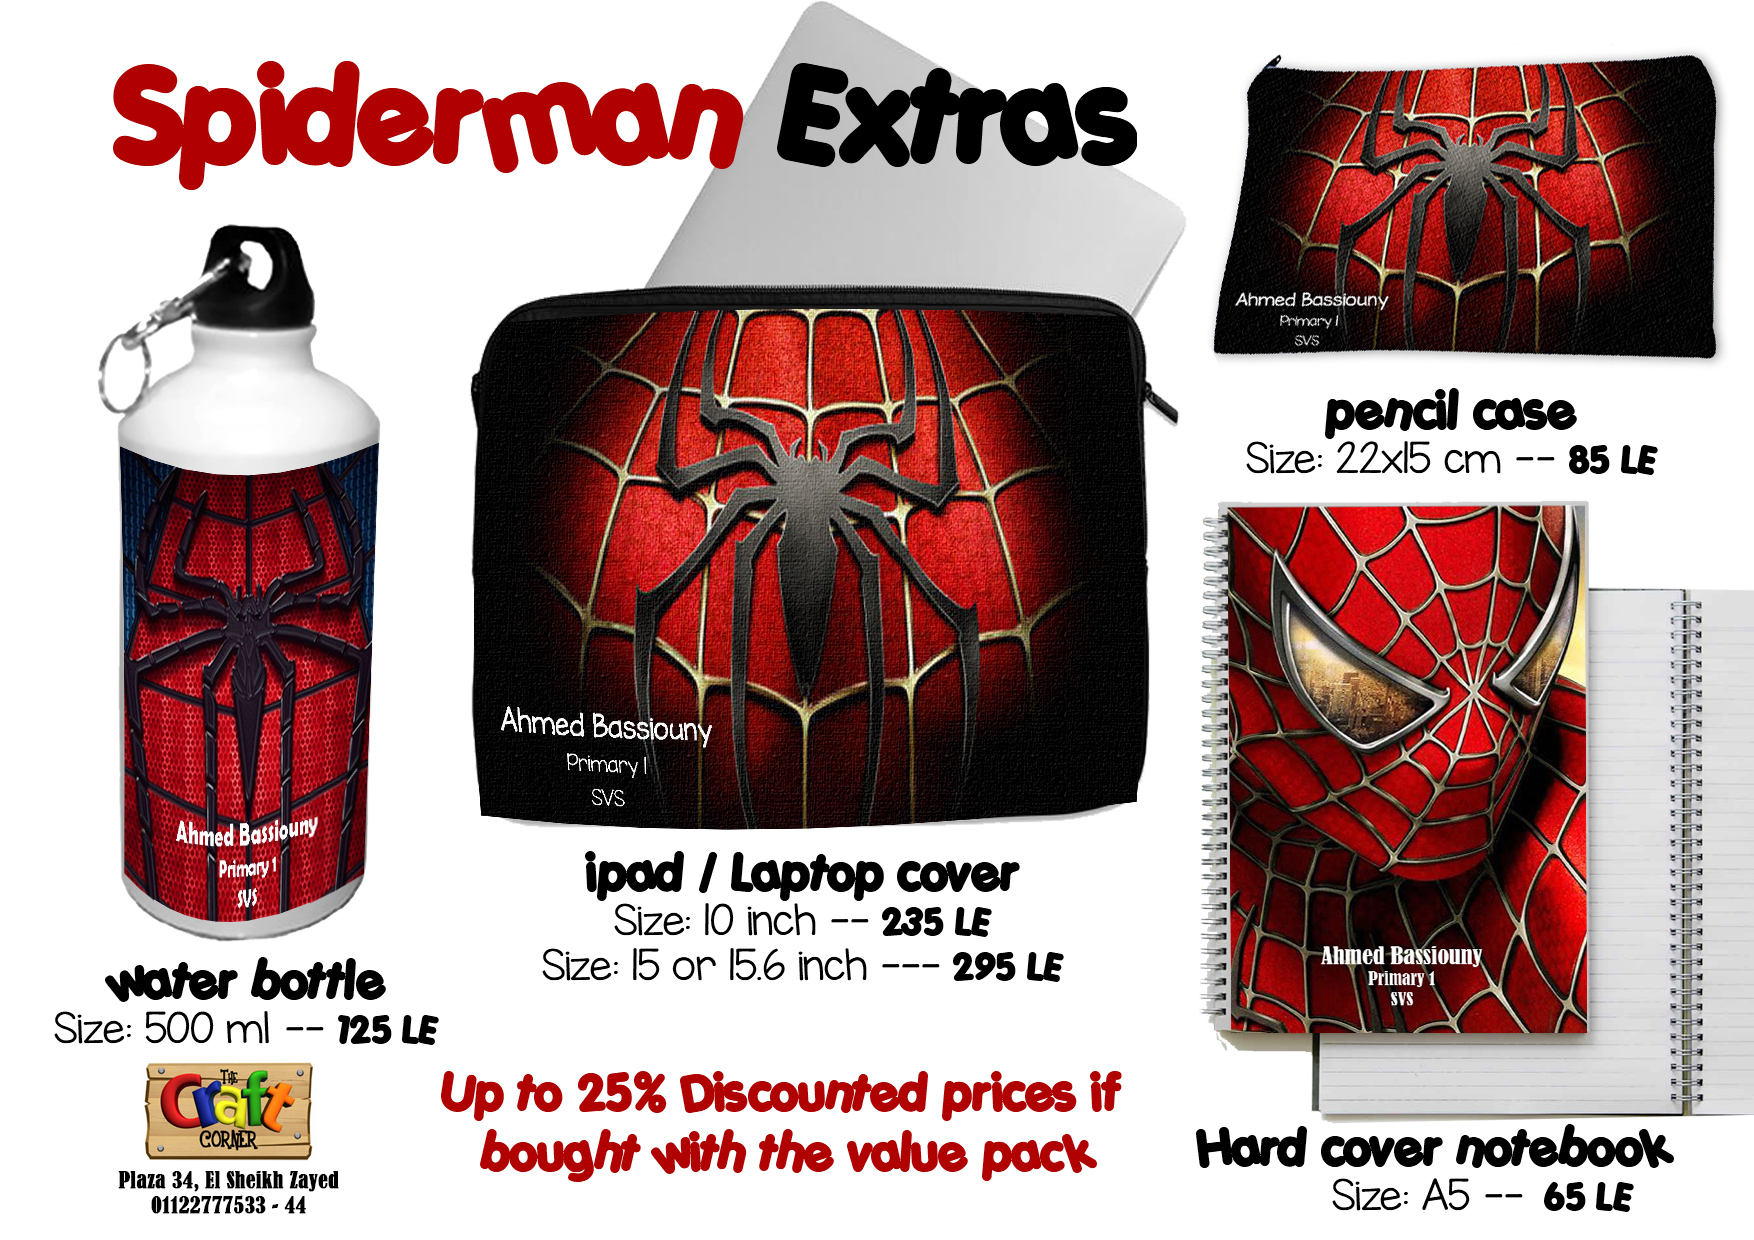 spiderman Extras